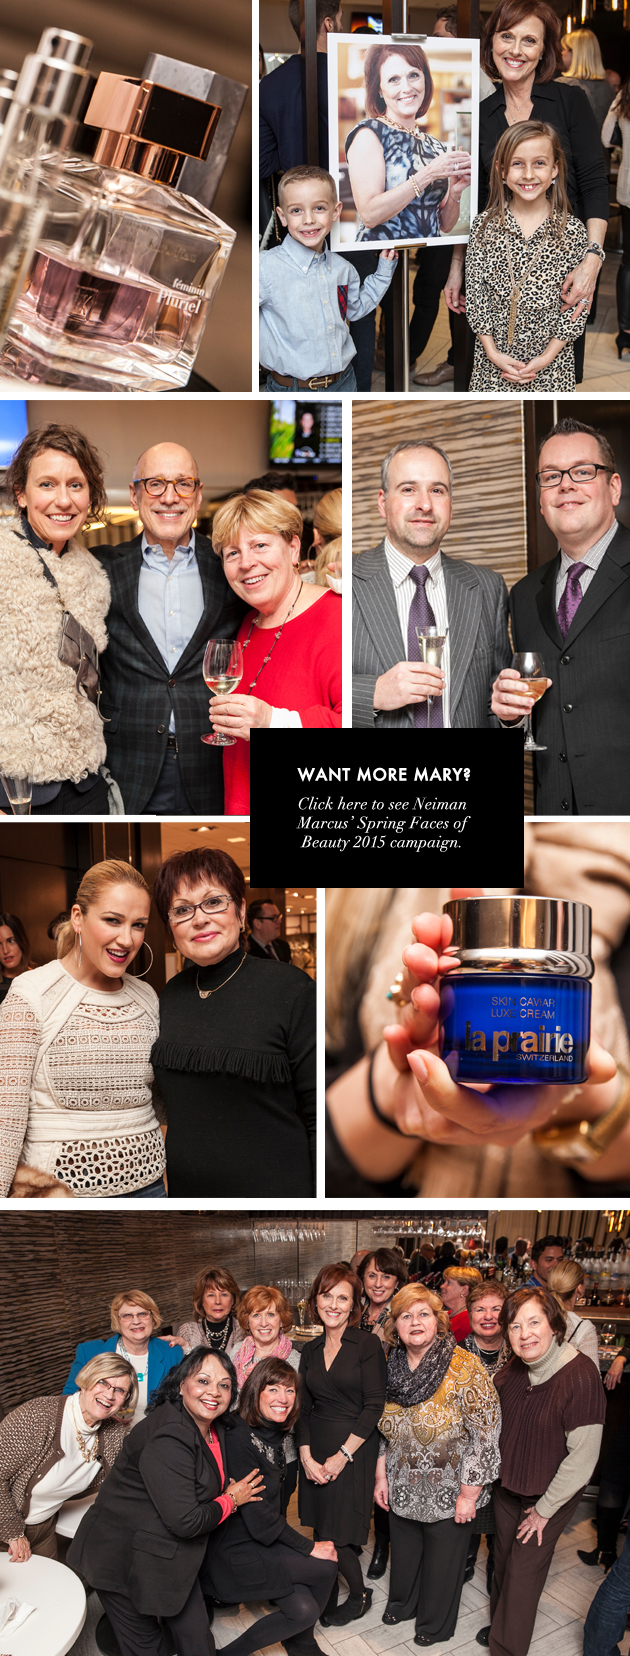 Found_Neiman Marcus Spring Faces of Beauty Surprise Mary Kostic